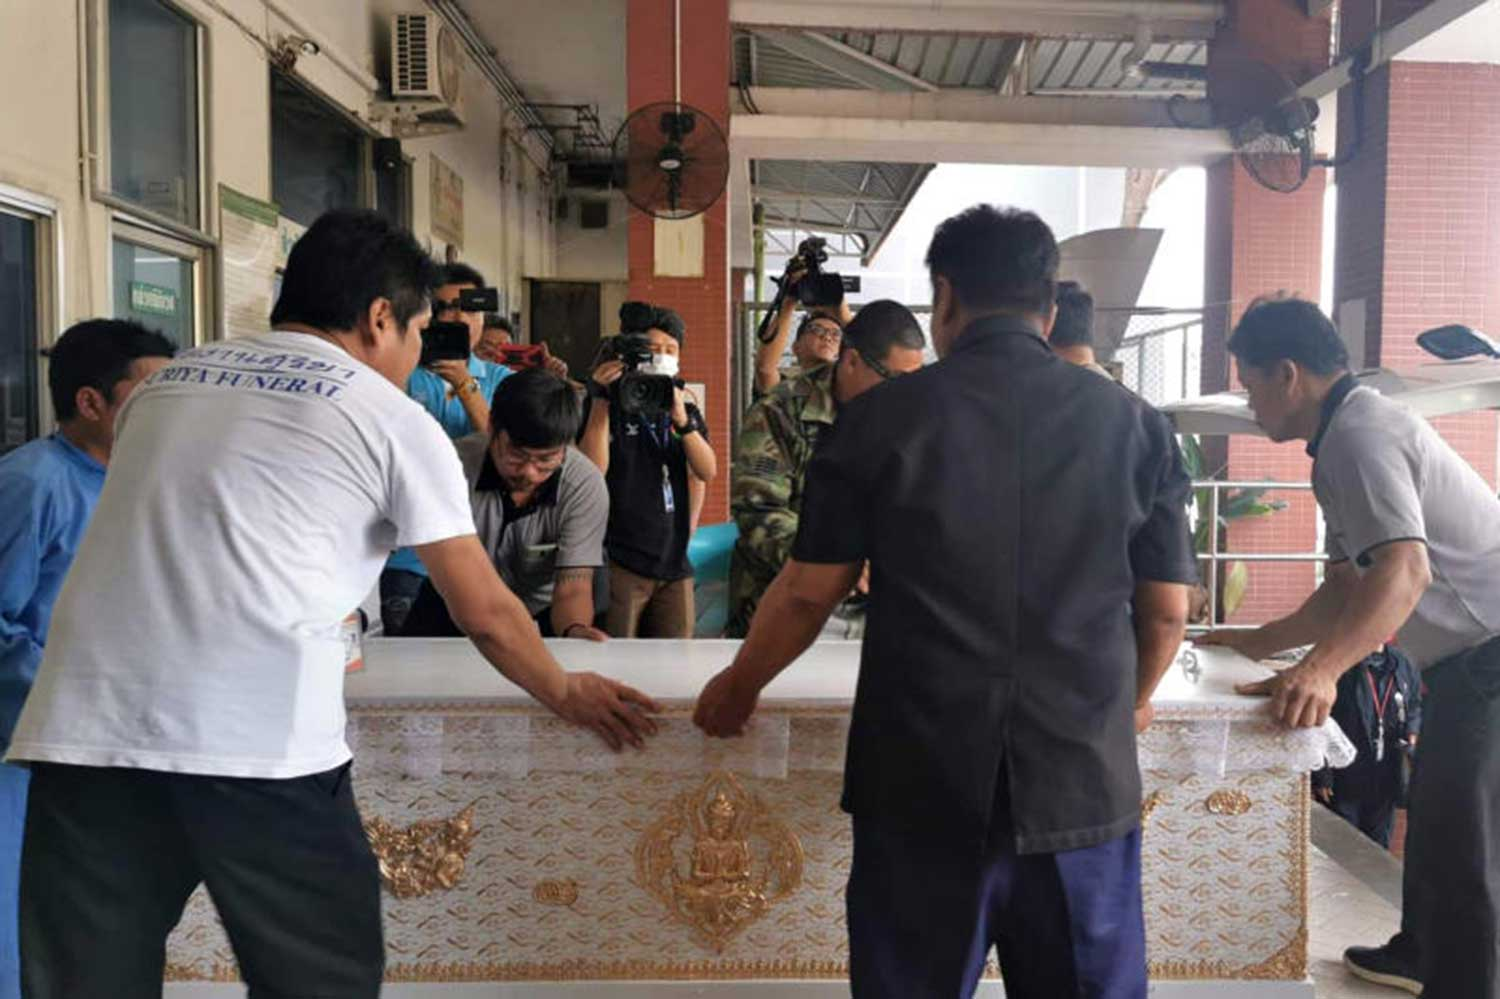 The body of one of three people killed in the gold shop robbery in Lop Buri is taken to a local temple for funeral rites. (Photo by Pongpat Wongyala)